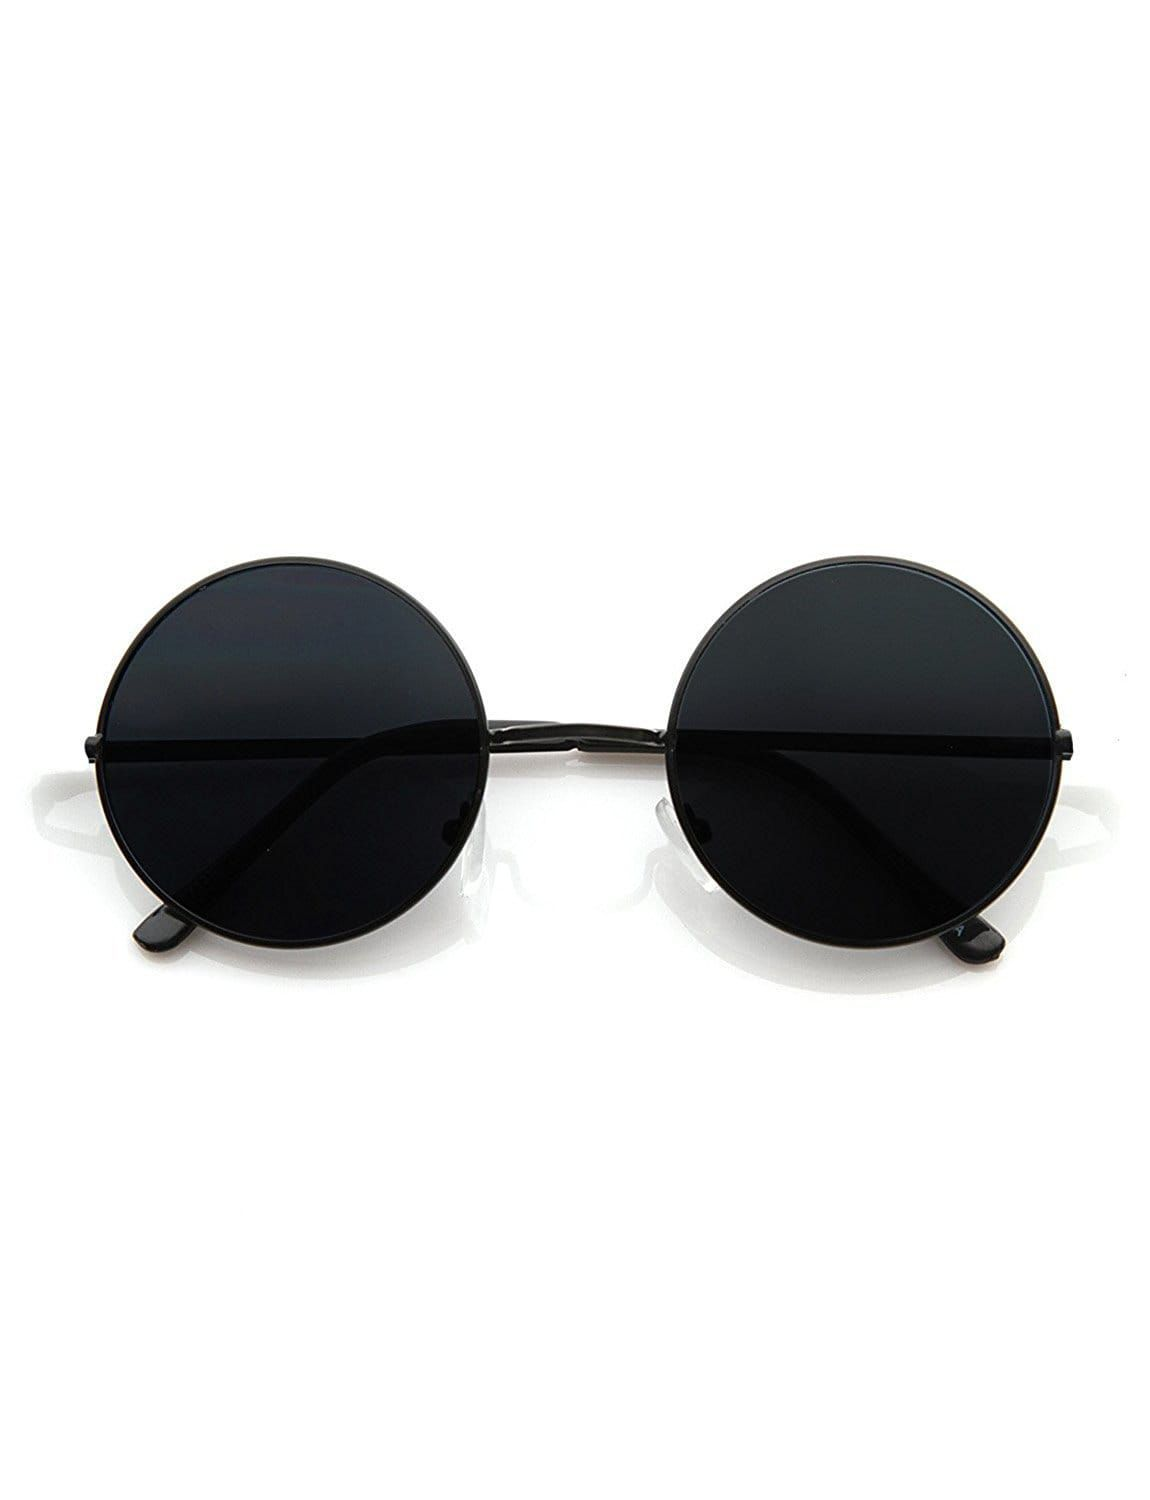 a54915809d Hipe Black Round Sunglasses ( BLK-Round-7 ) - Buy Hipe Black Round  Sunglasses ( BLK-Round-7 ) Online at Low Price - Snapdeal